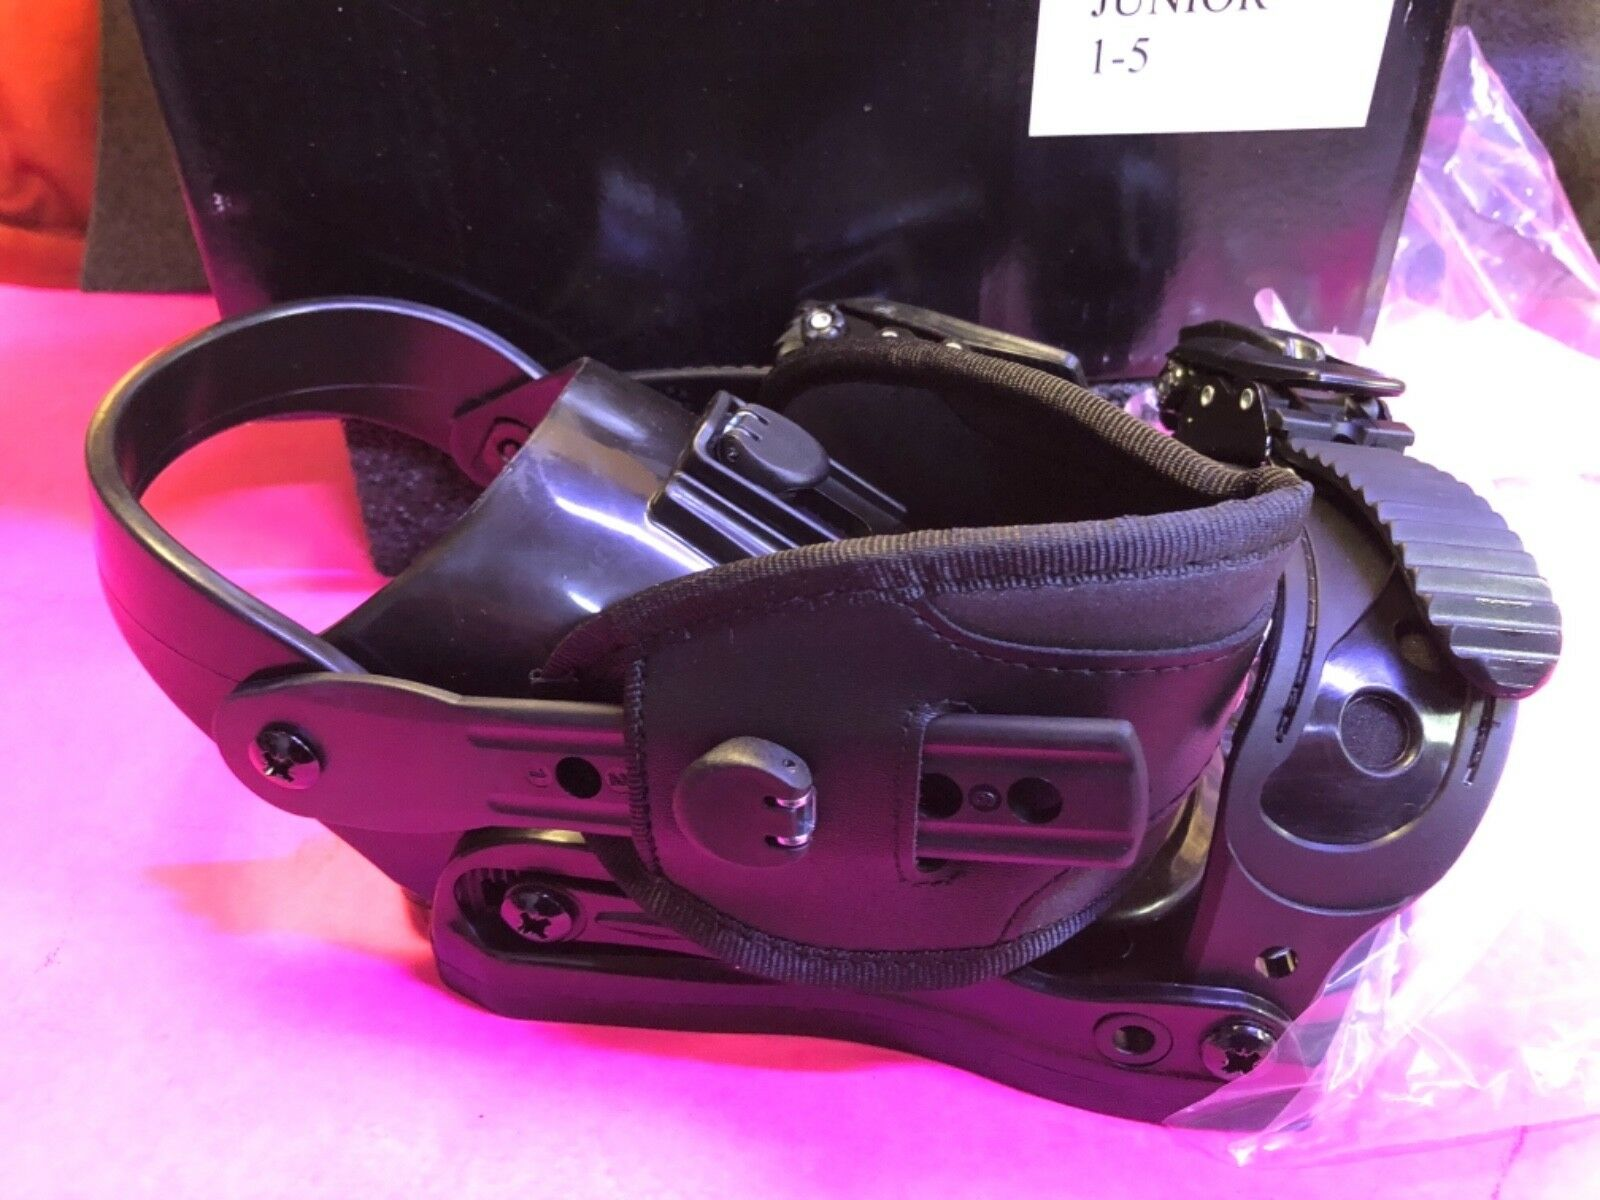 Brand New In Box 5th Element Stealth Jr 1-5  Snowboard Bindings 294346